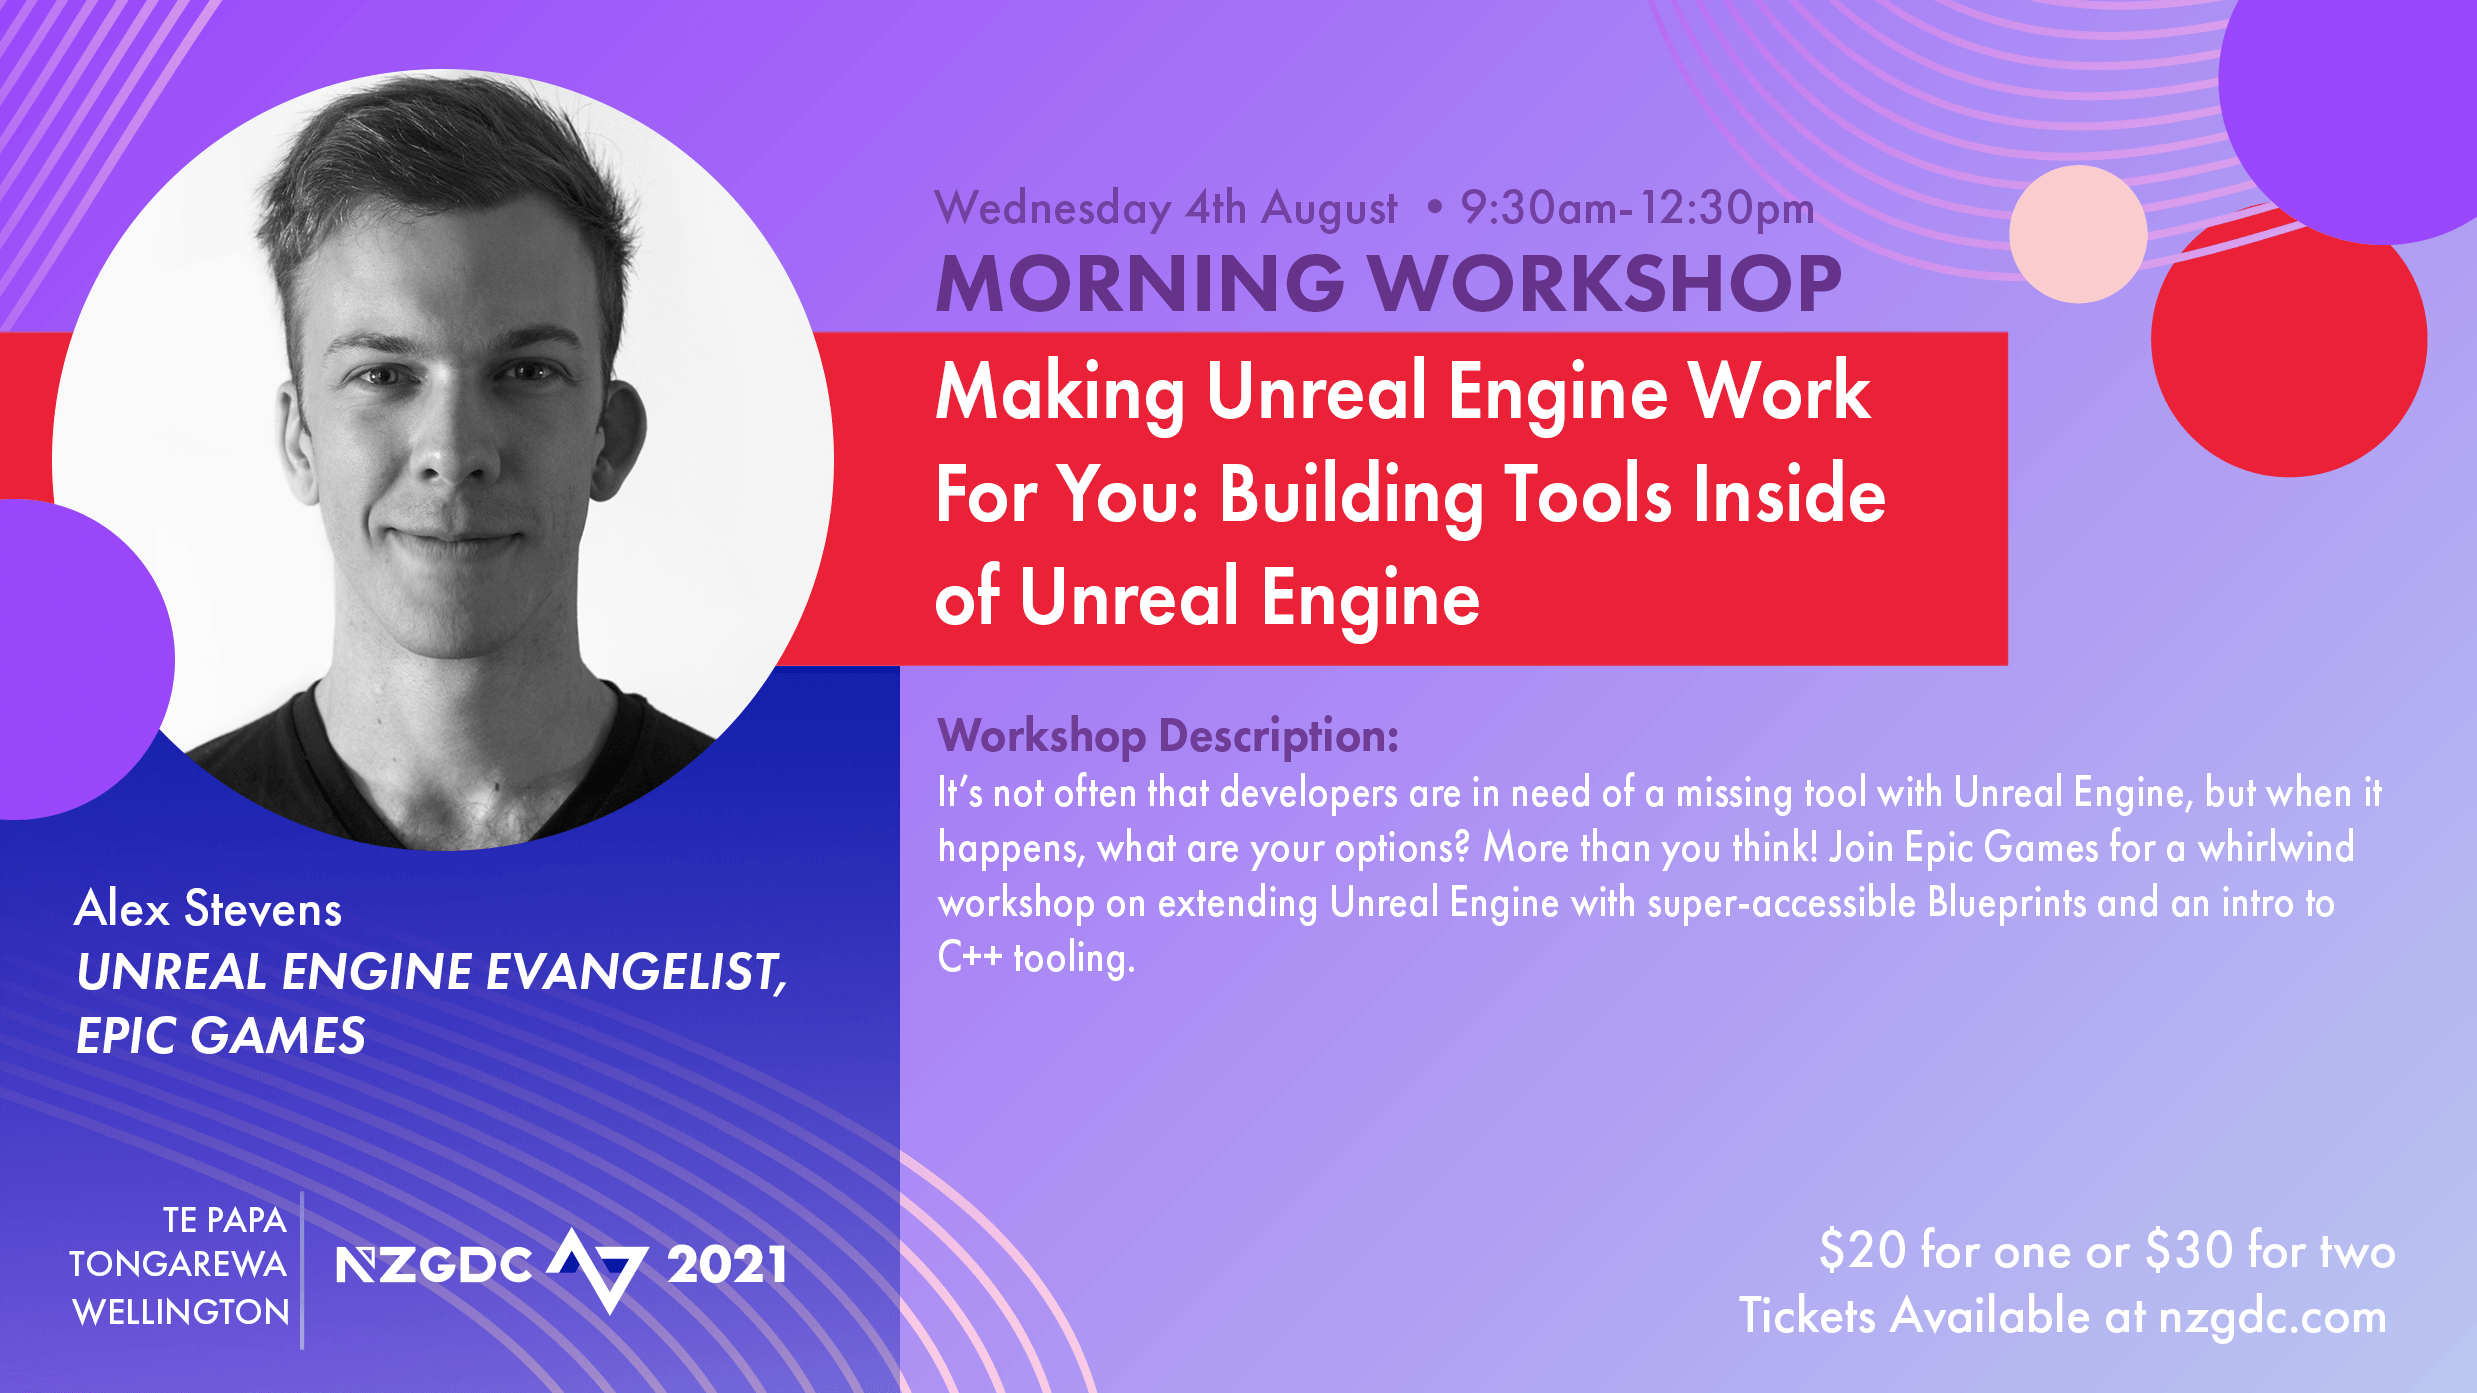 Making UE Work For You: Building Tools Inside of Unreal Engine